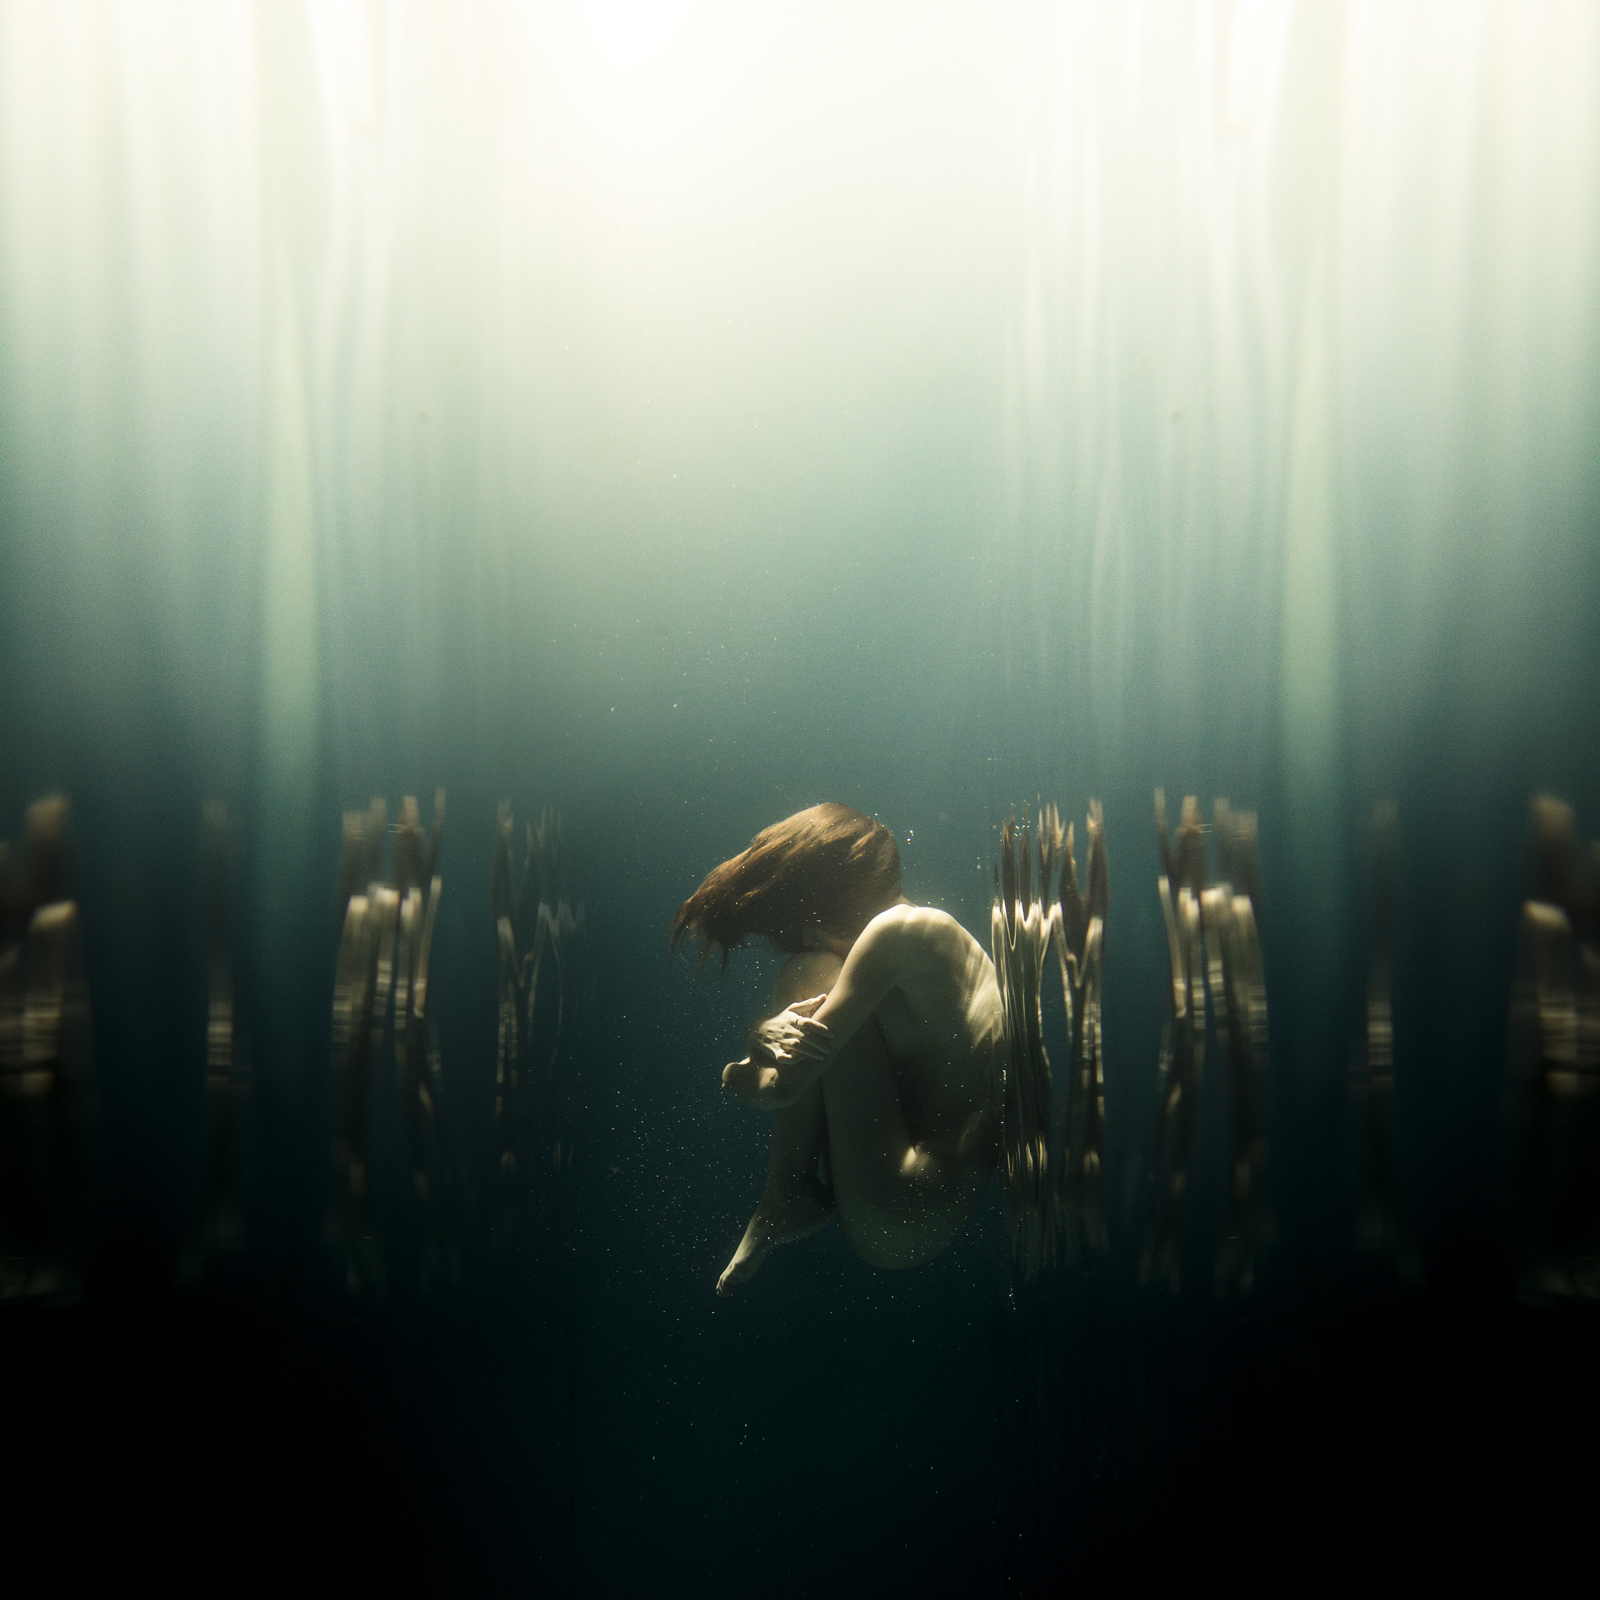 Underwater-Photography-Thanh-Nguyen-Mirage-culture and life_02